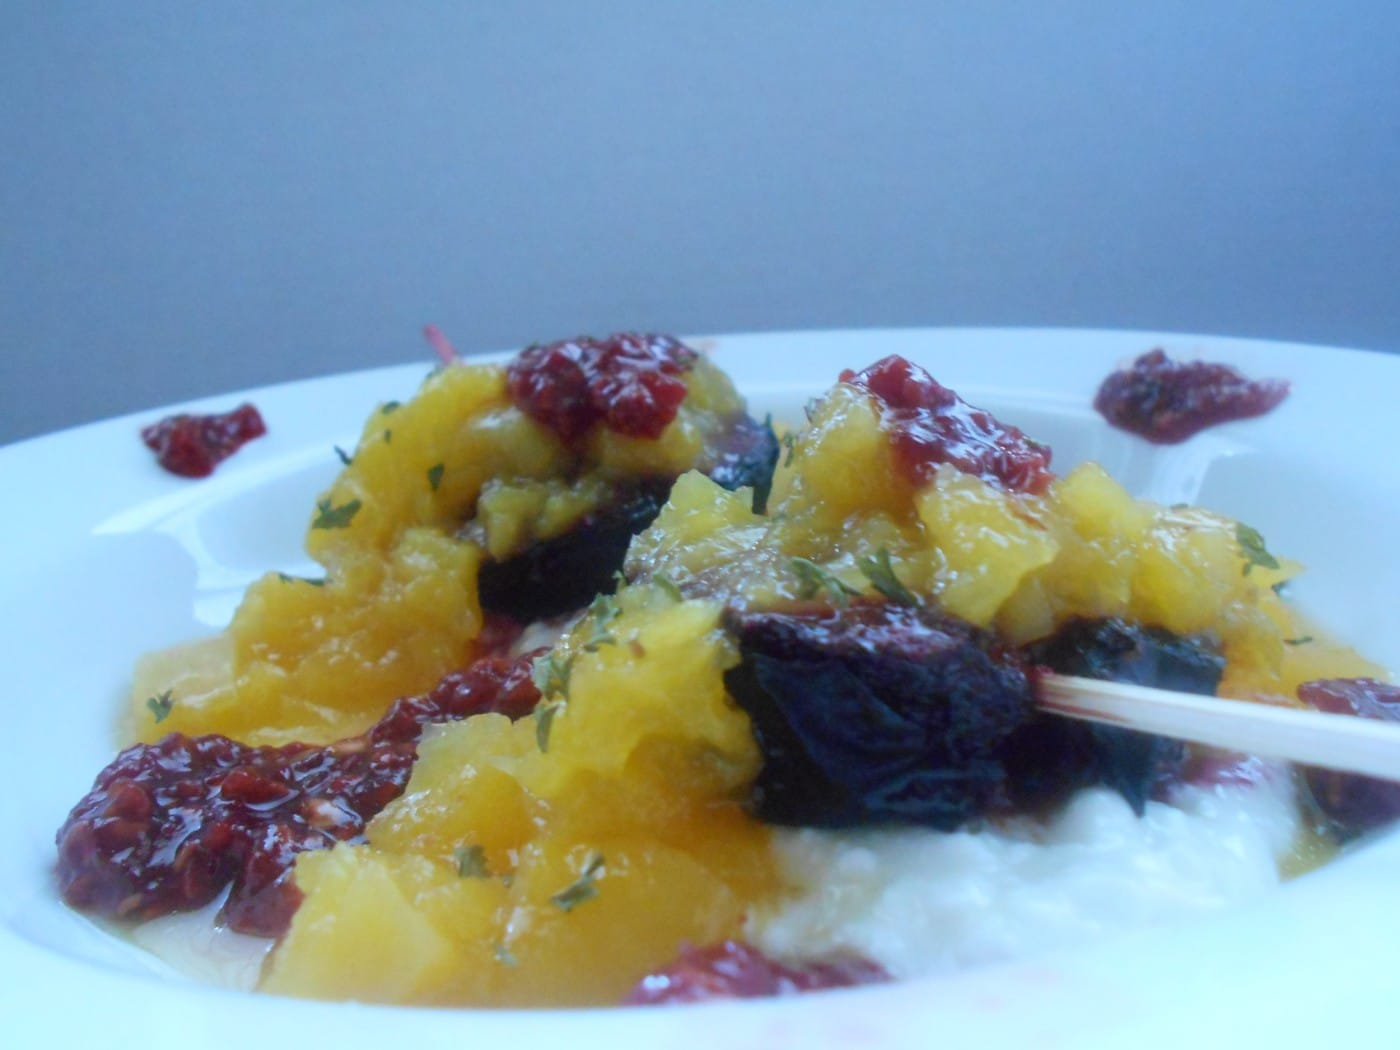 Side view of roasted plums on cottage cheese and topped with mango compote